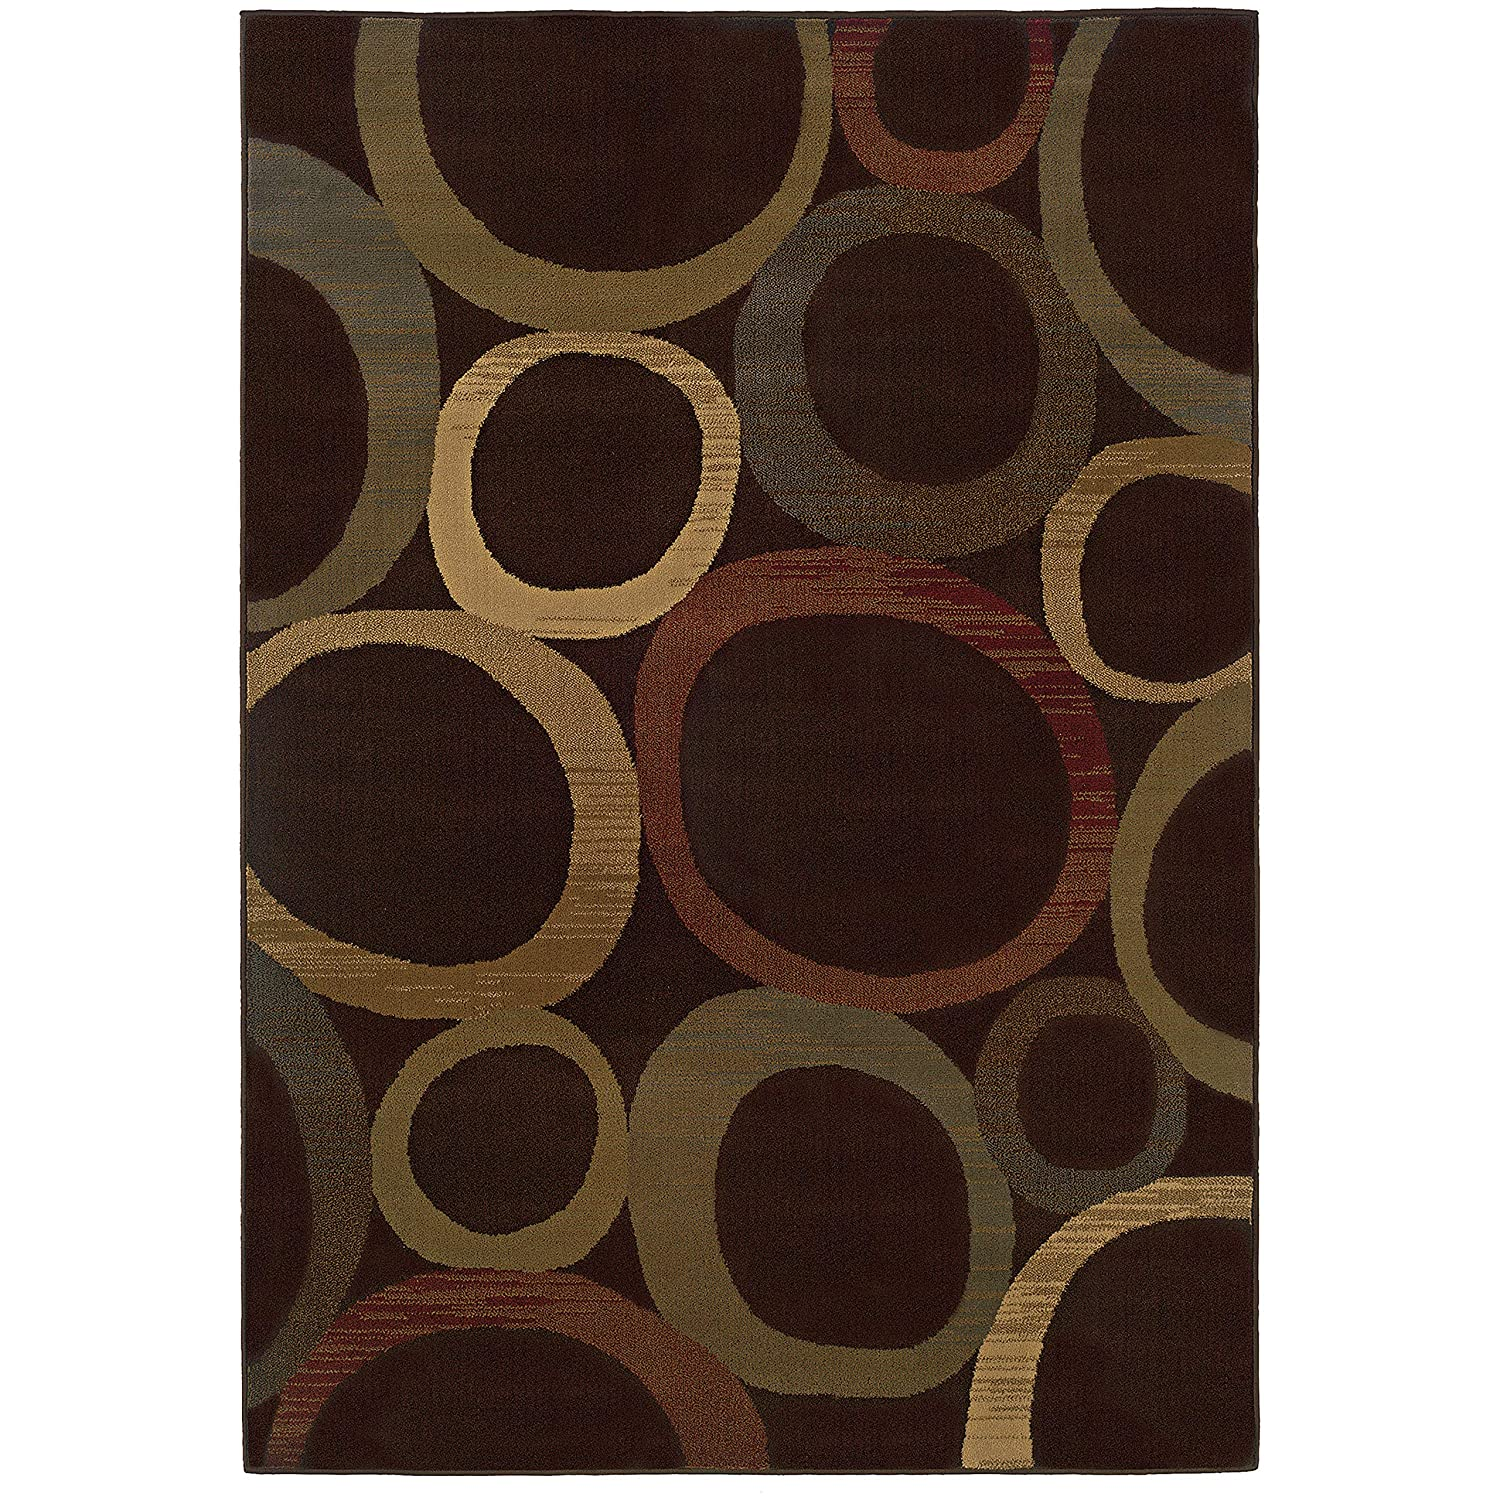 Christopher Knight Home CK-D1632 Trinity Circles Indoor Area Rug 1ft 10in X 2ft 10in Brown,Beige